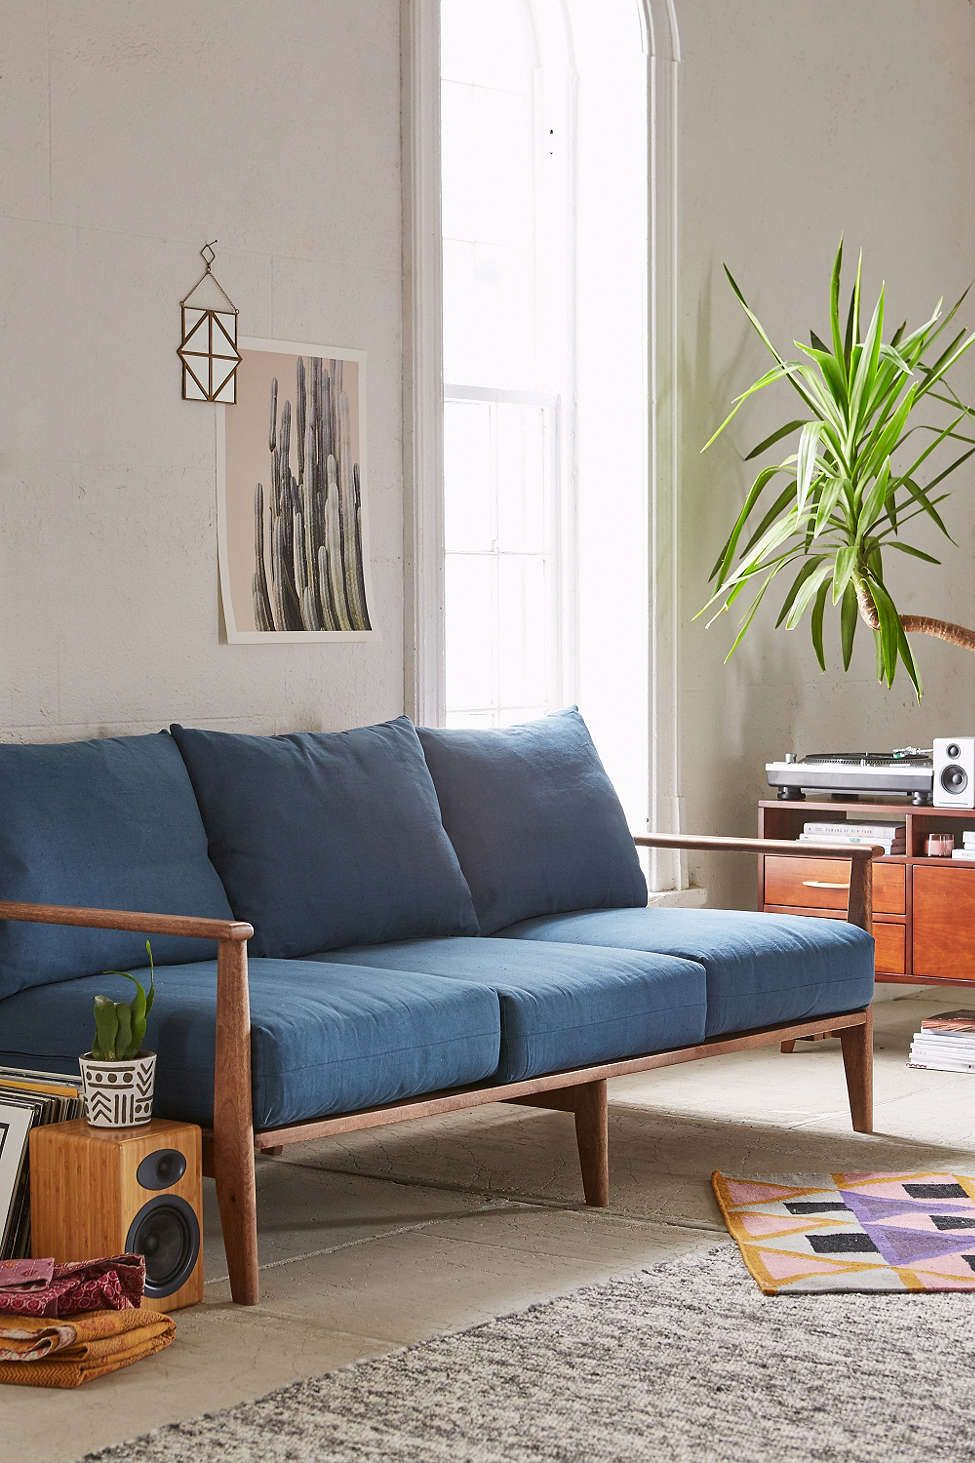 home chamberlin couch urban photo sofa velvet outfitters gallery lavender image decor